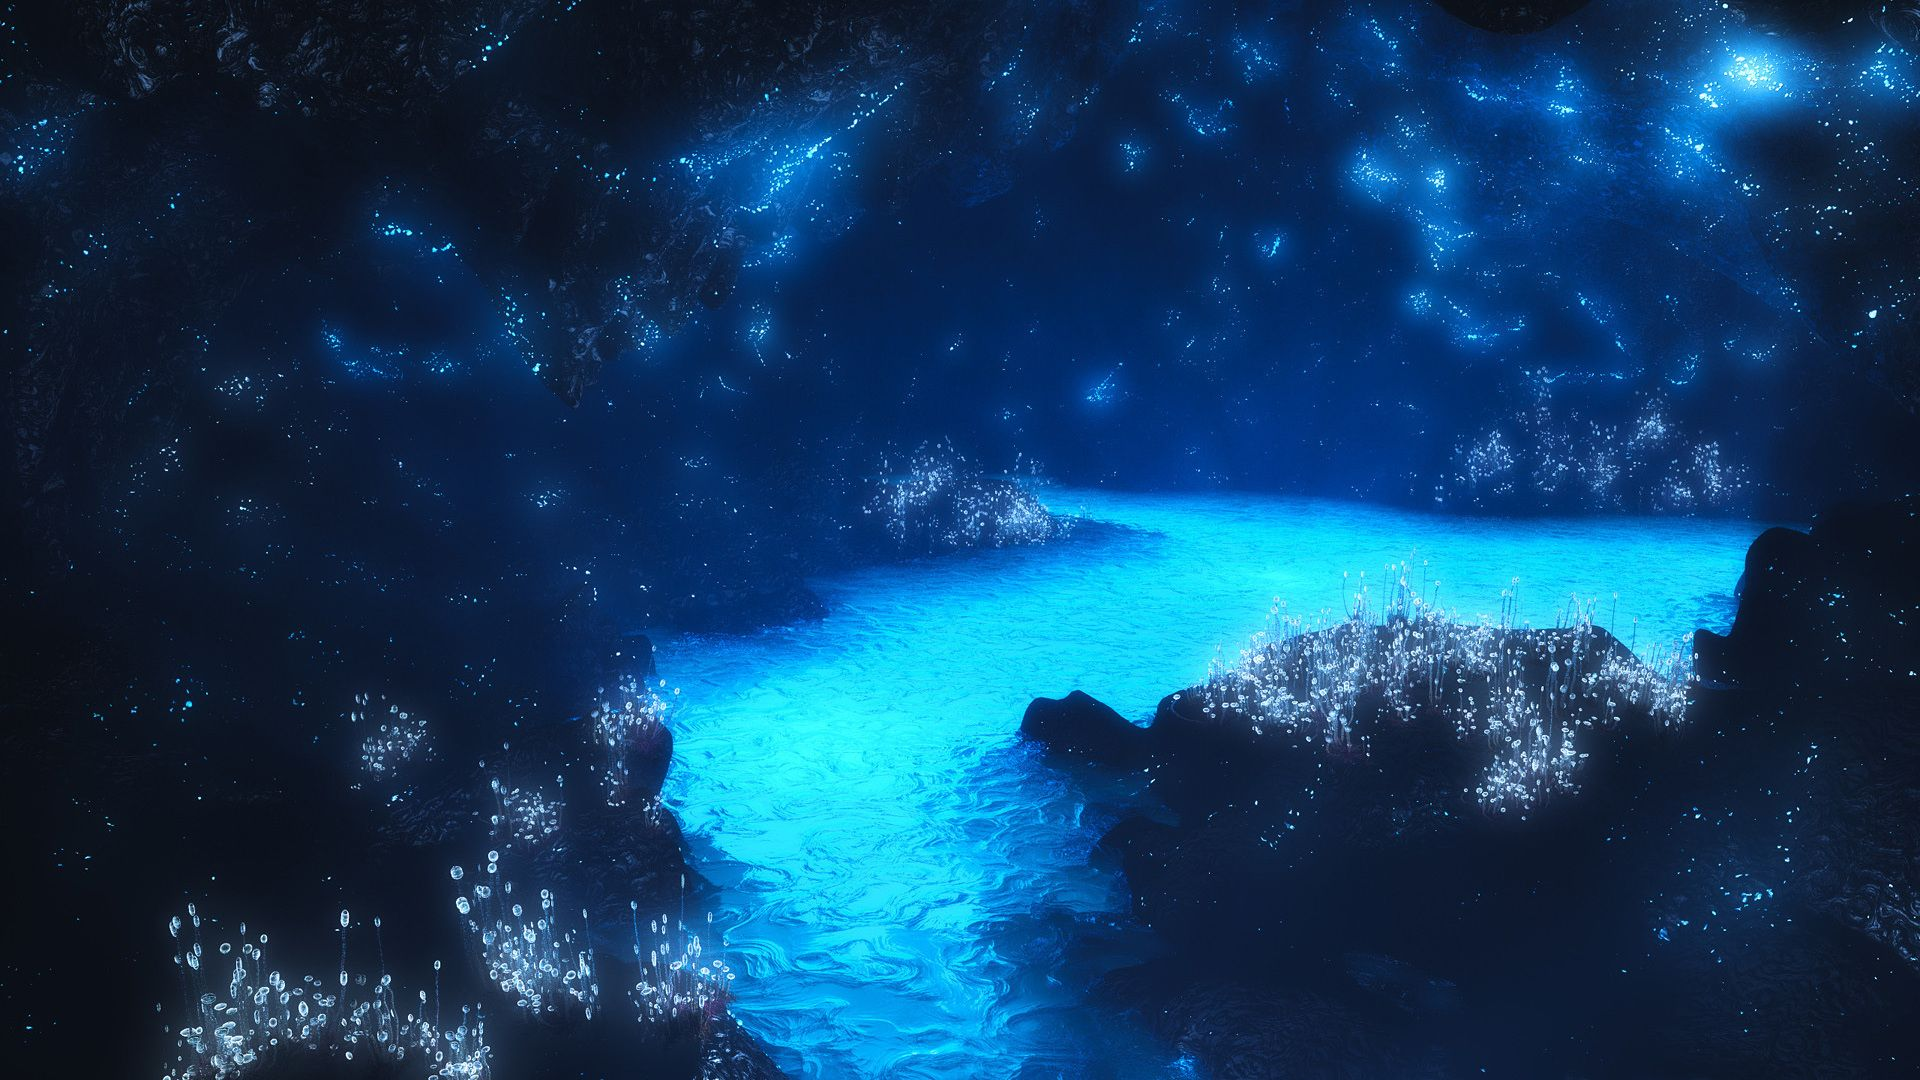 Cave Blue full hd wallpaper